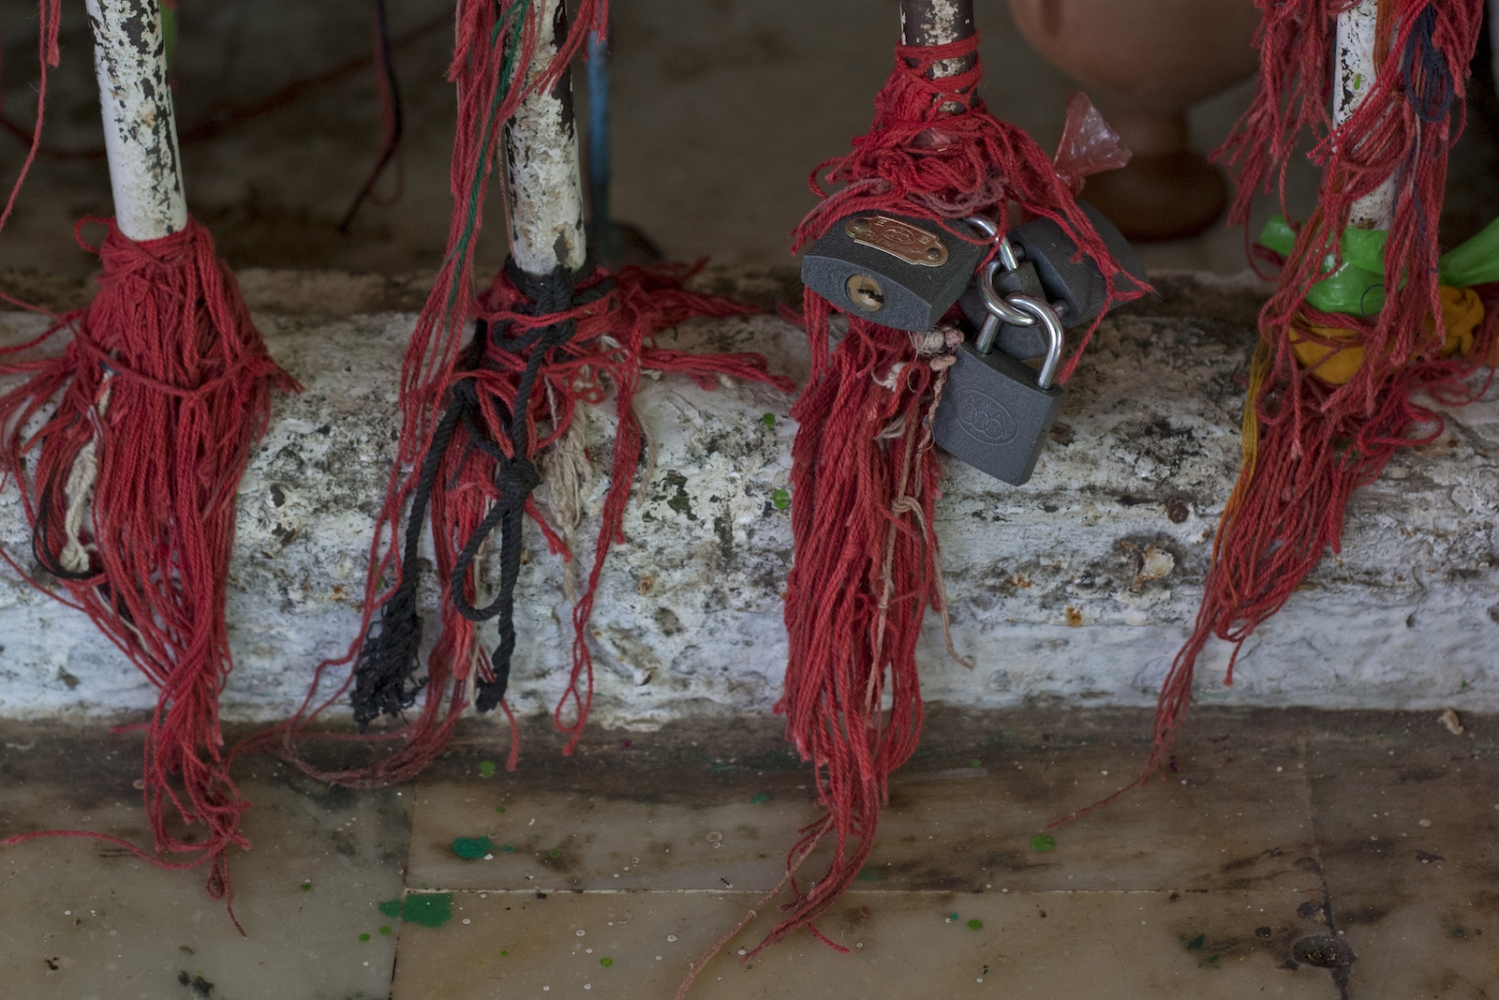 Padlocks and threads symbolising the prayers of Pakistani worshippers are left at the tomb of spiritual leader Hazrat Abdullah Shah Ashabi in Makli in the district of Thatta in Pakistan's Sindh province on November 24, 2011.